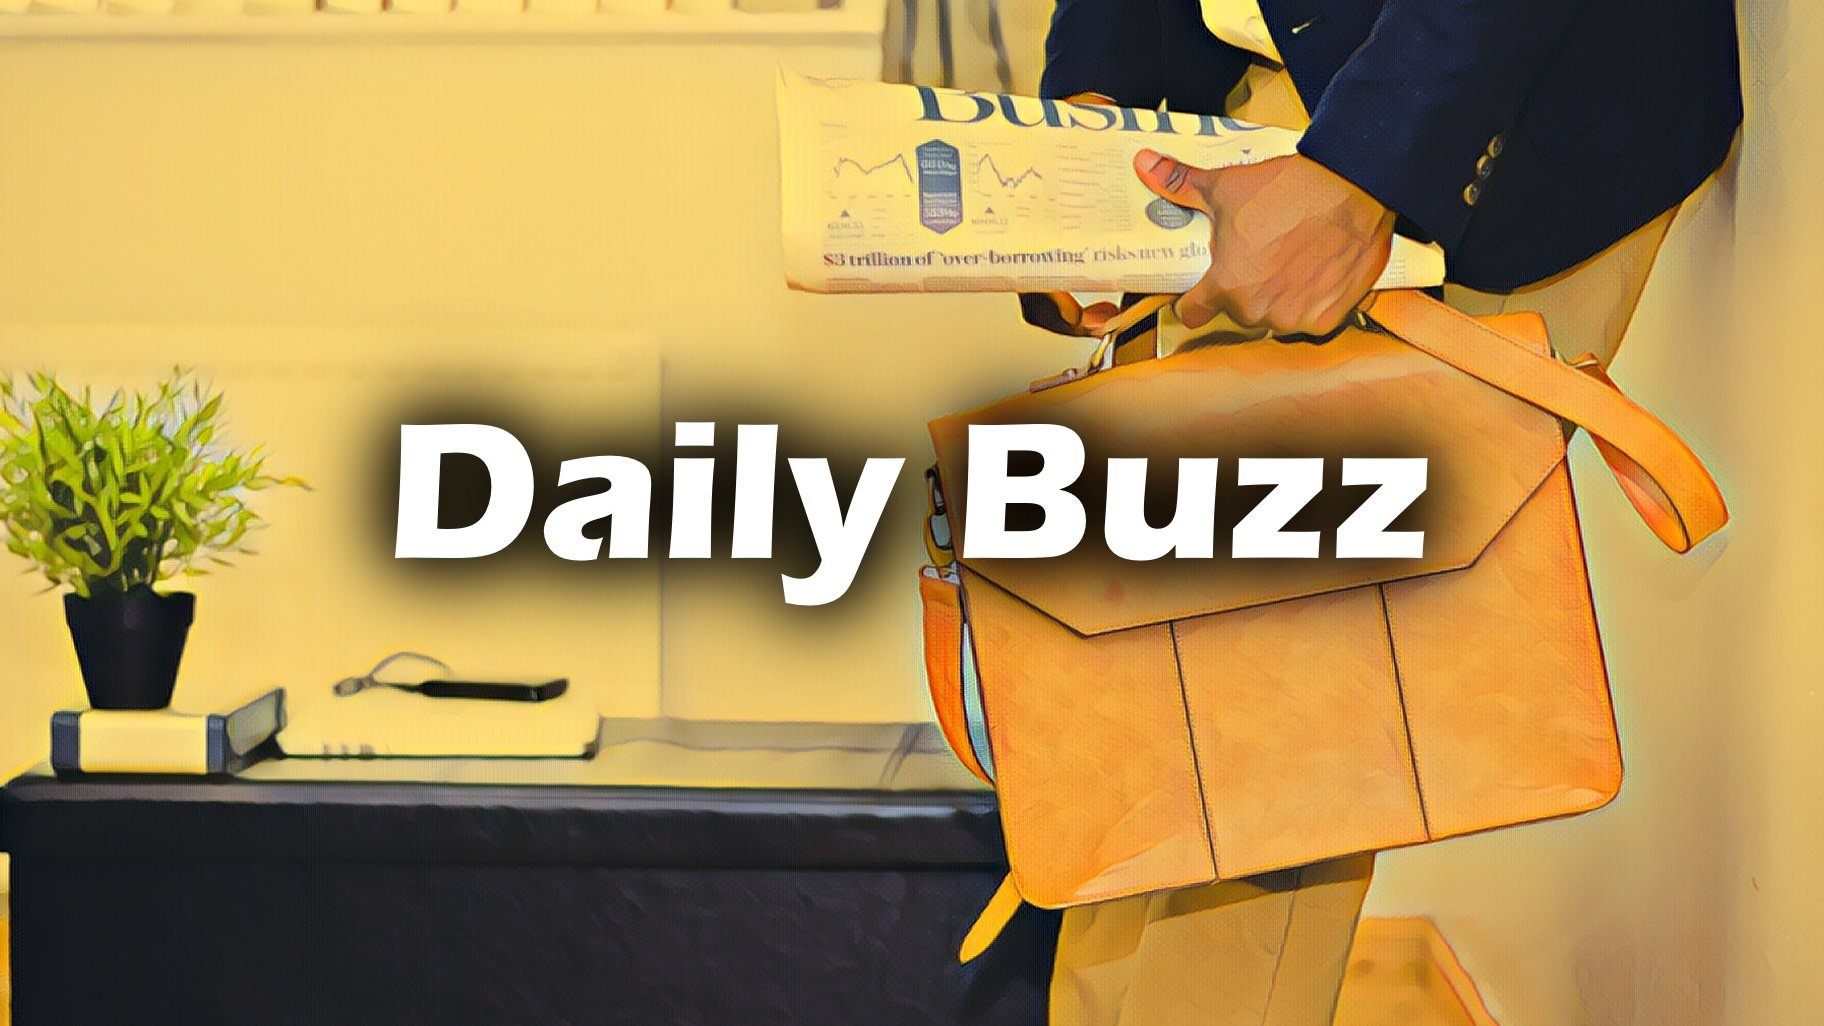 DailyBuzz Friday 4 January 2019